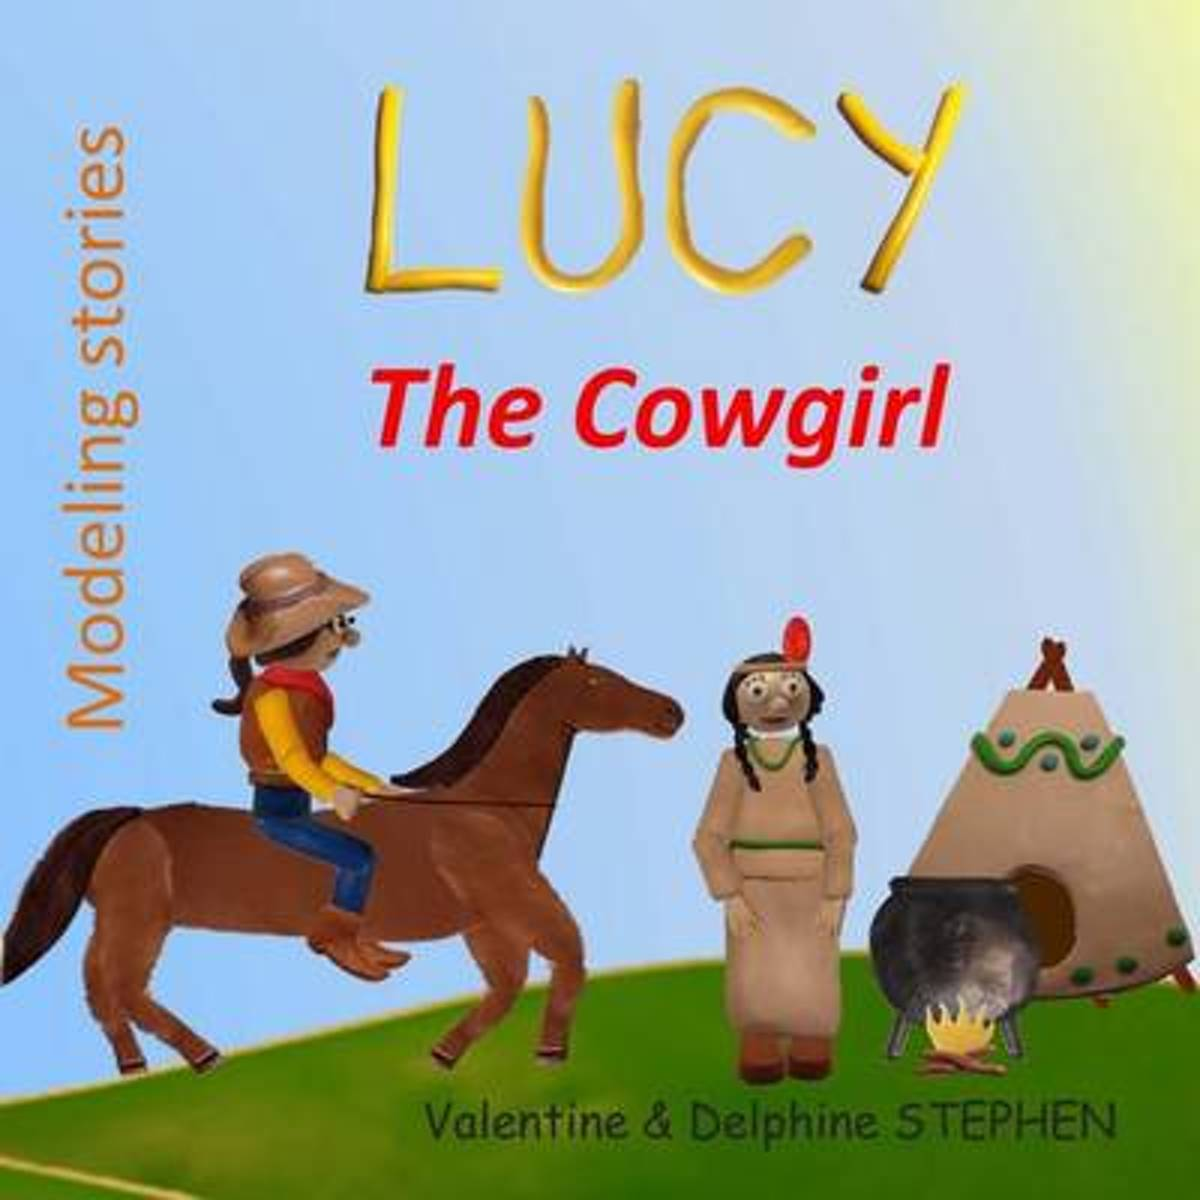 Lucy the Cowgirl